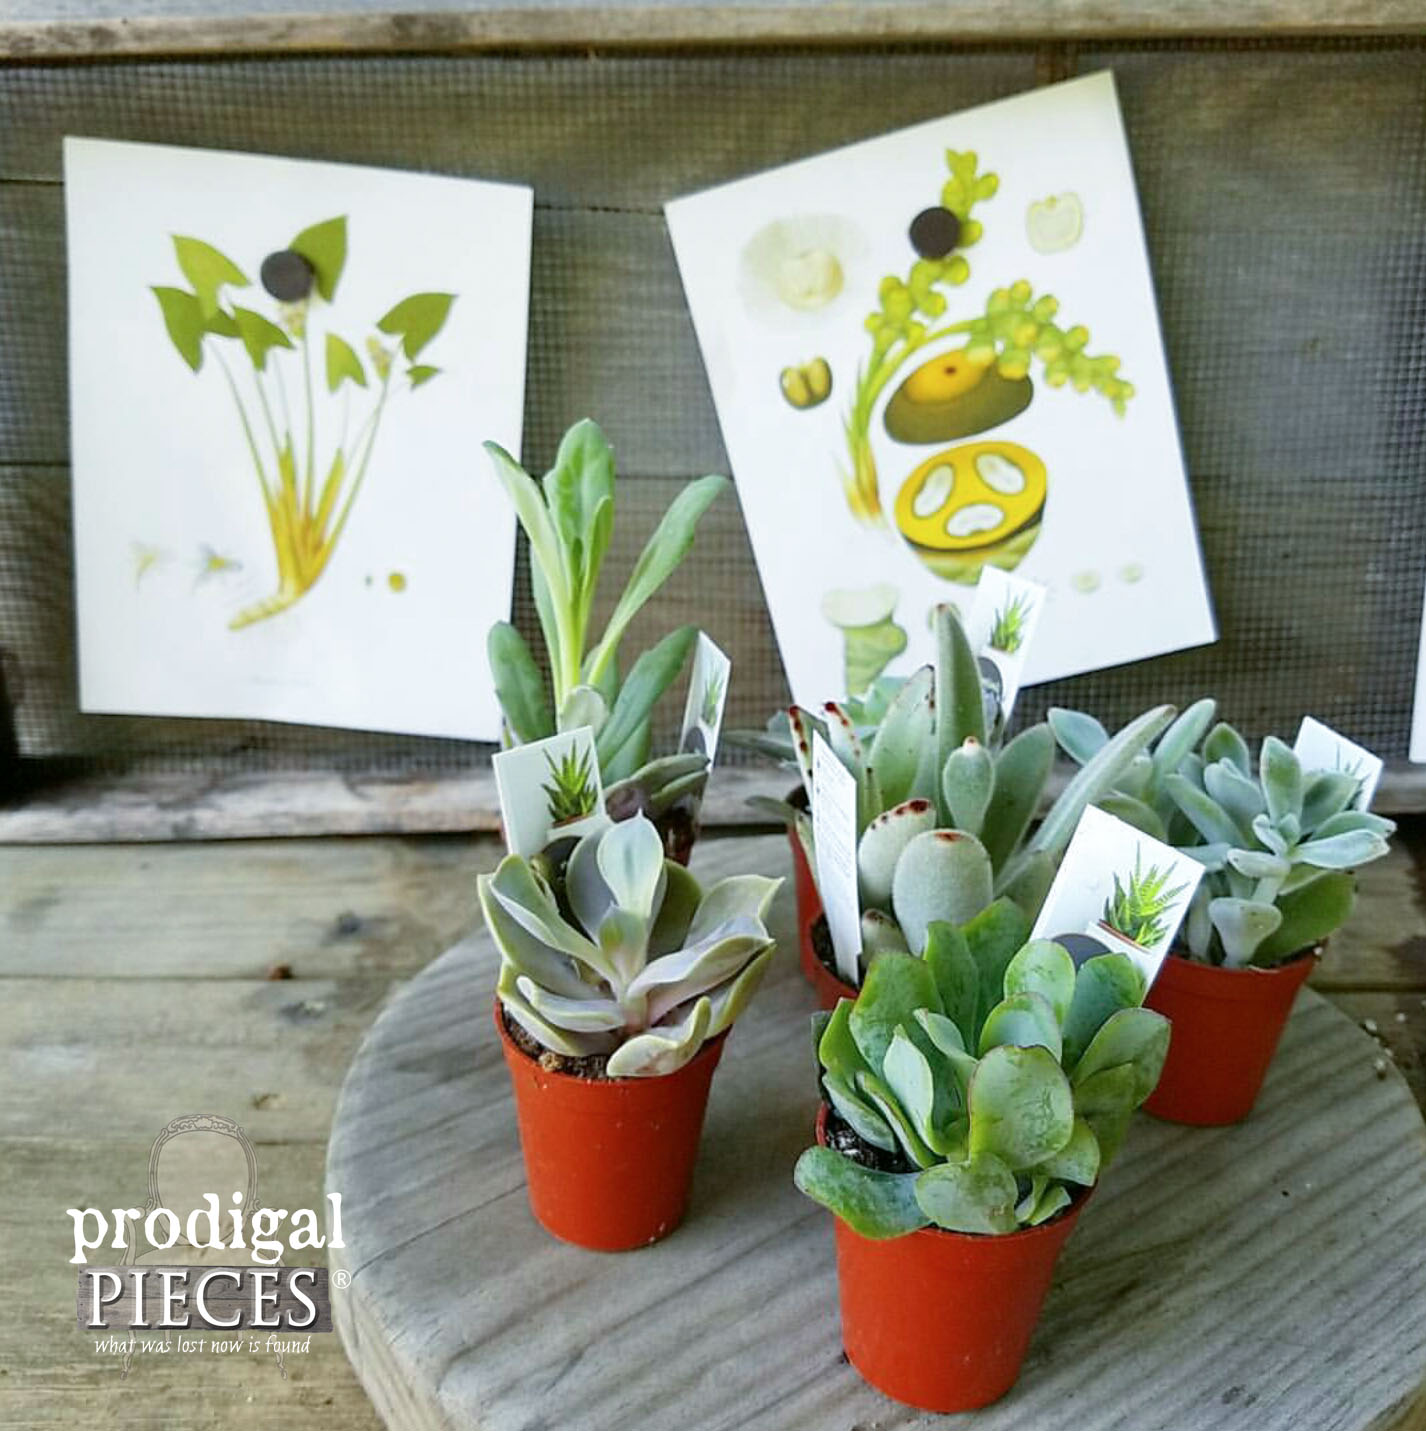 Assortment of Miniature Succulents for Repurposed Planter by Prodigal Pieces | www.prodigalpieces.com